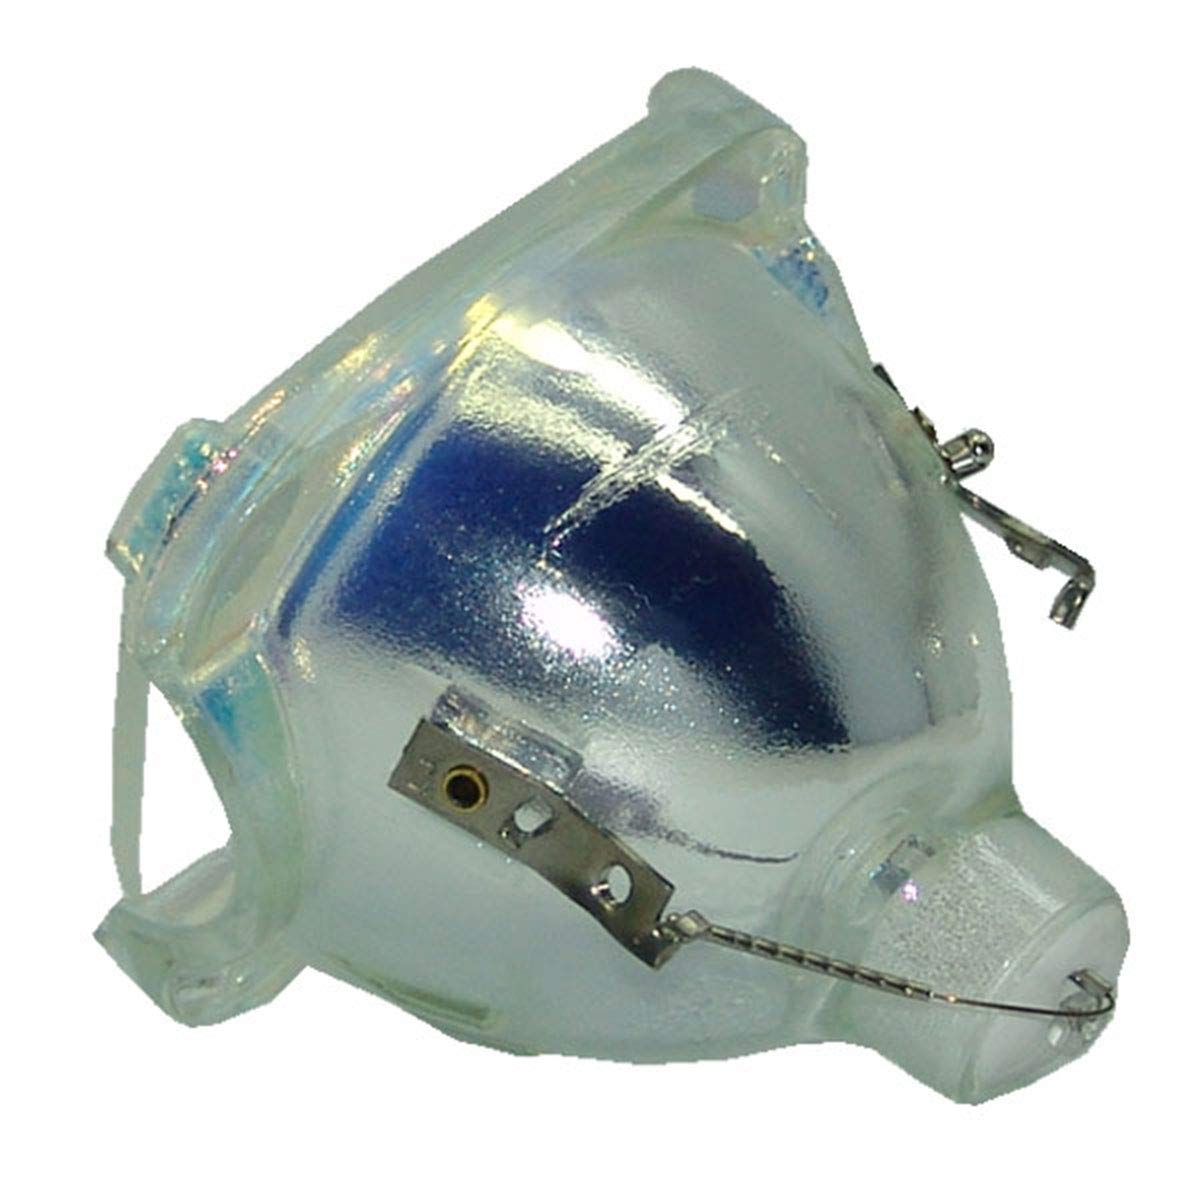 Original Philips TV Lamp Replacement for Mitsubishi WD-73740 Bulb Only